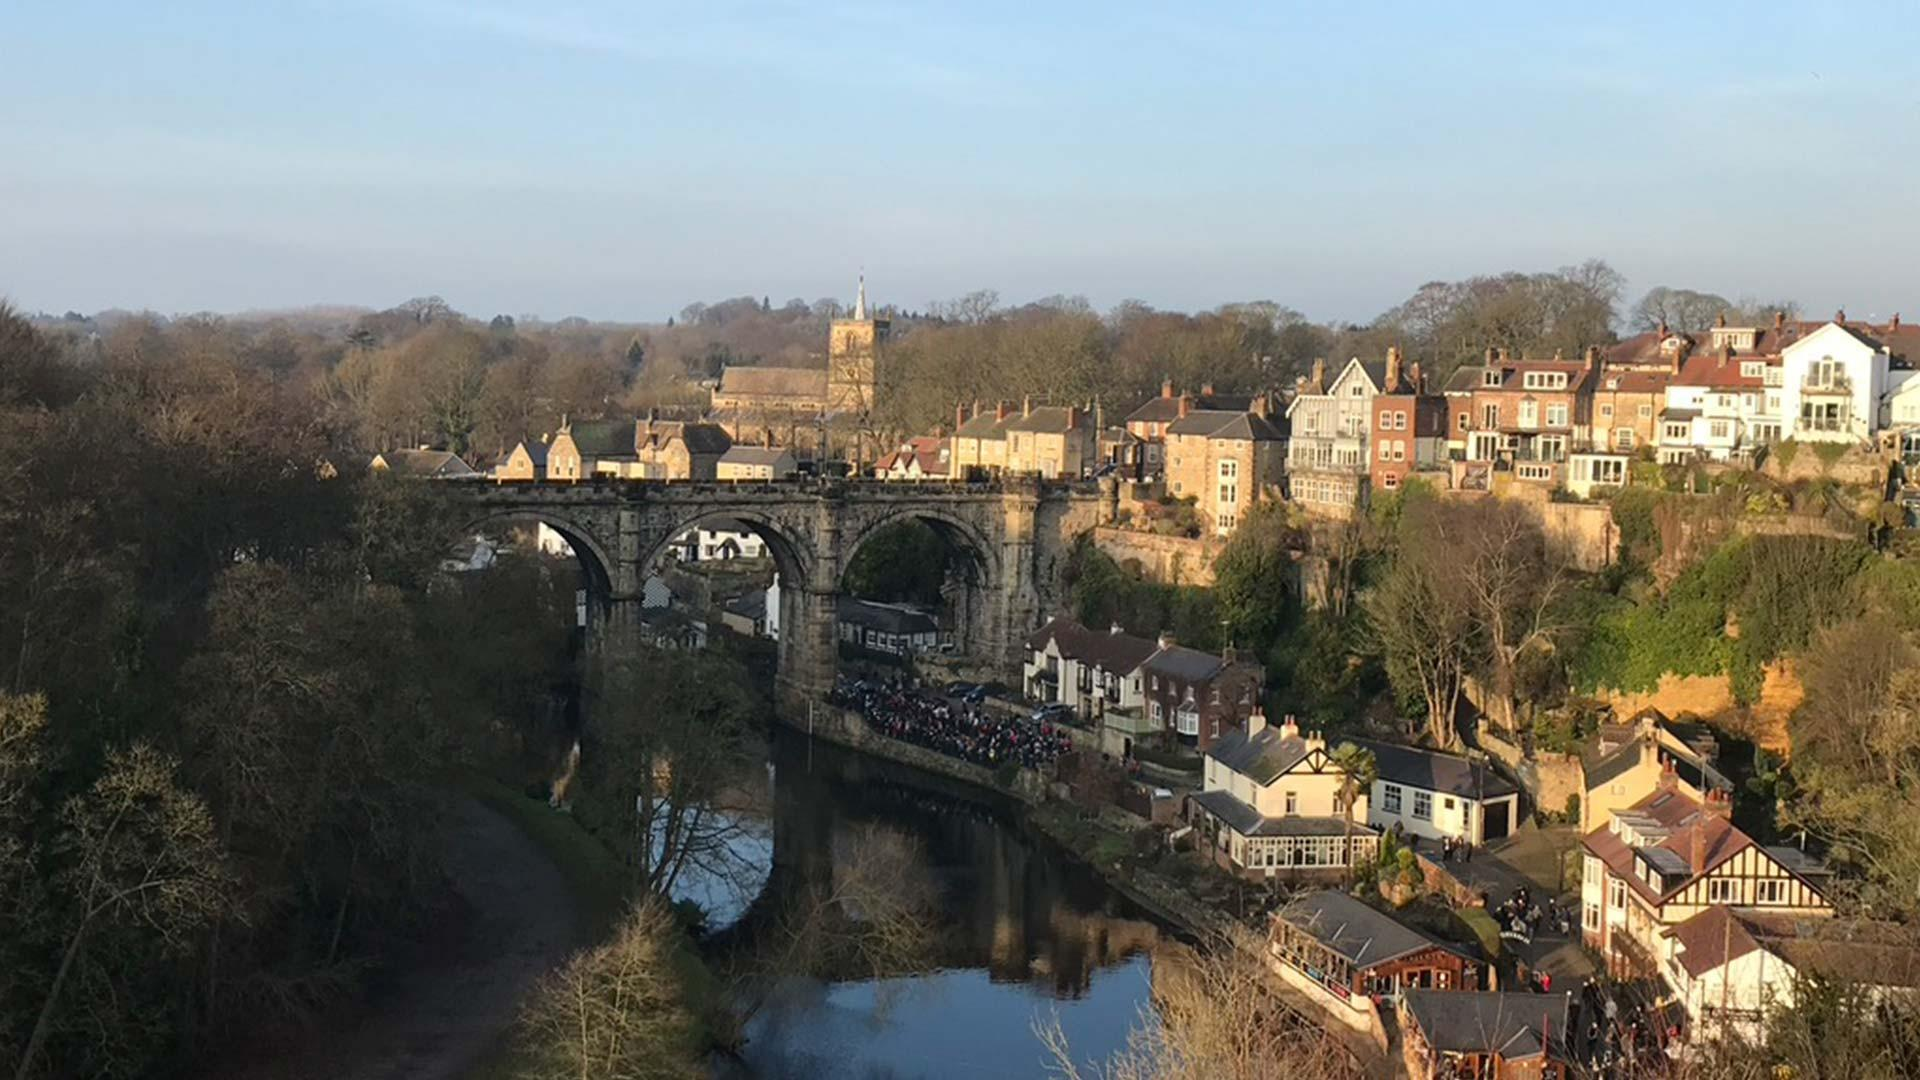 Knaresborough town and viaduct from the castle grounds